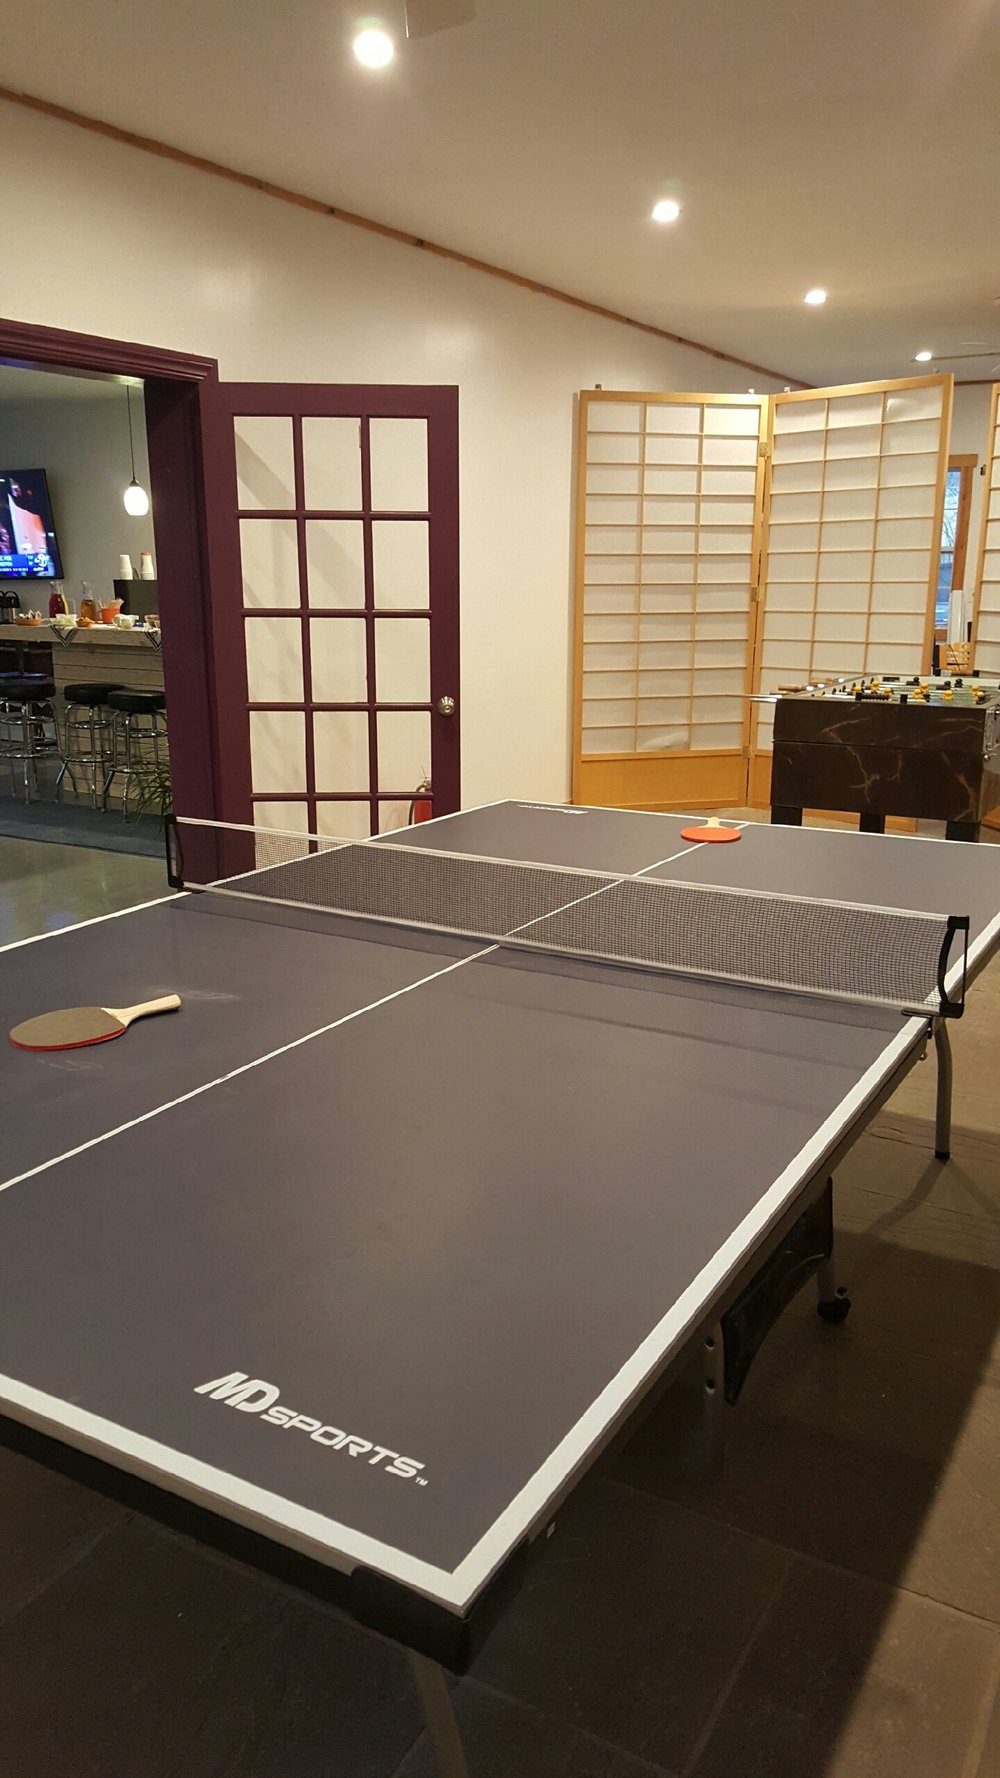 In our brand new Carriage House enjoy games like ping pong and pool!